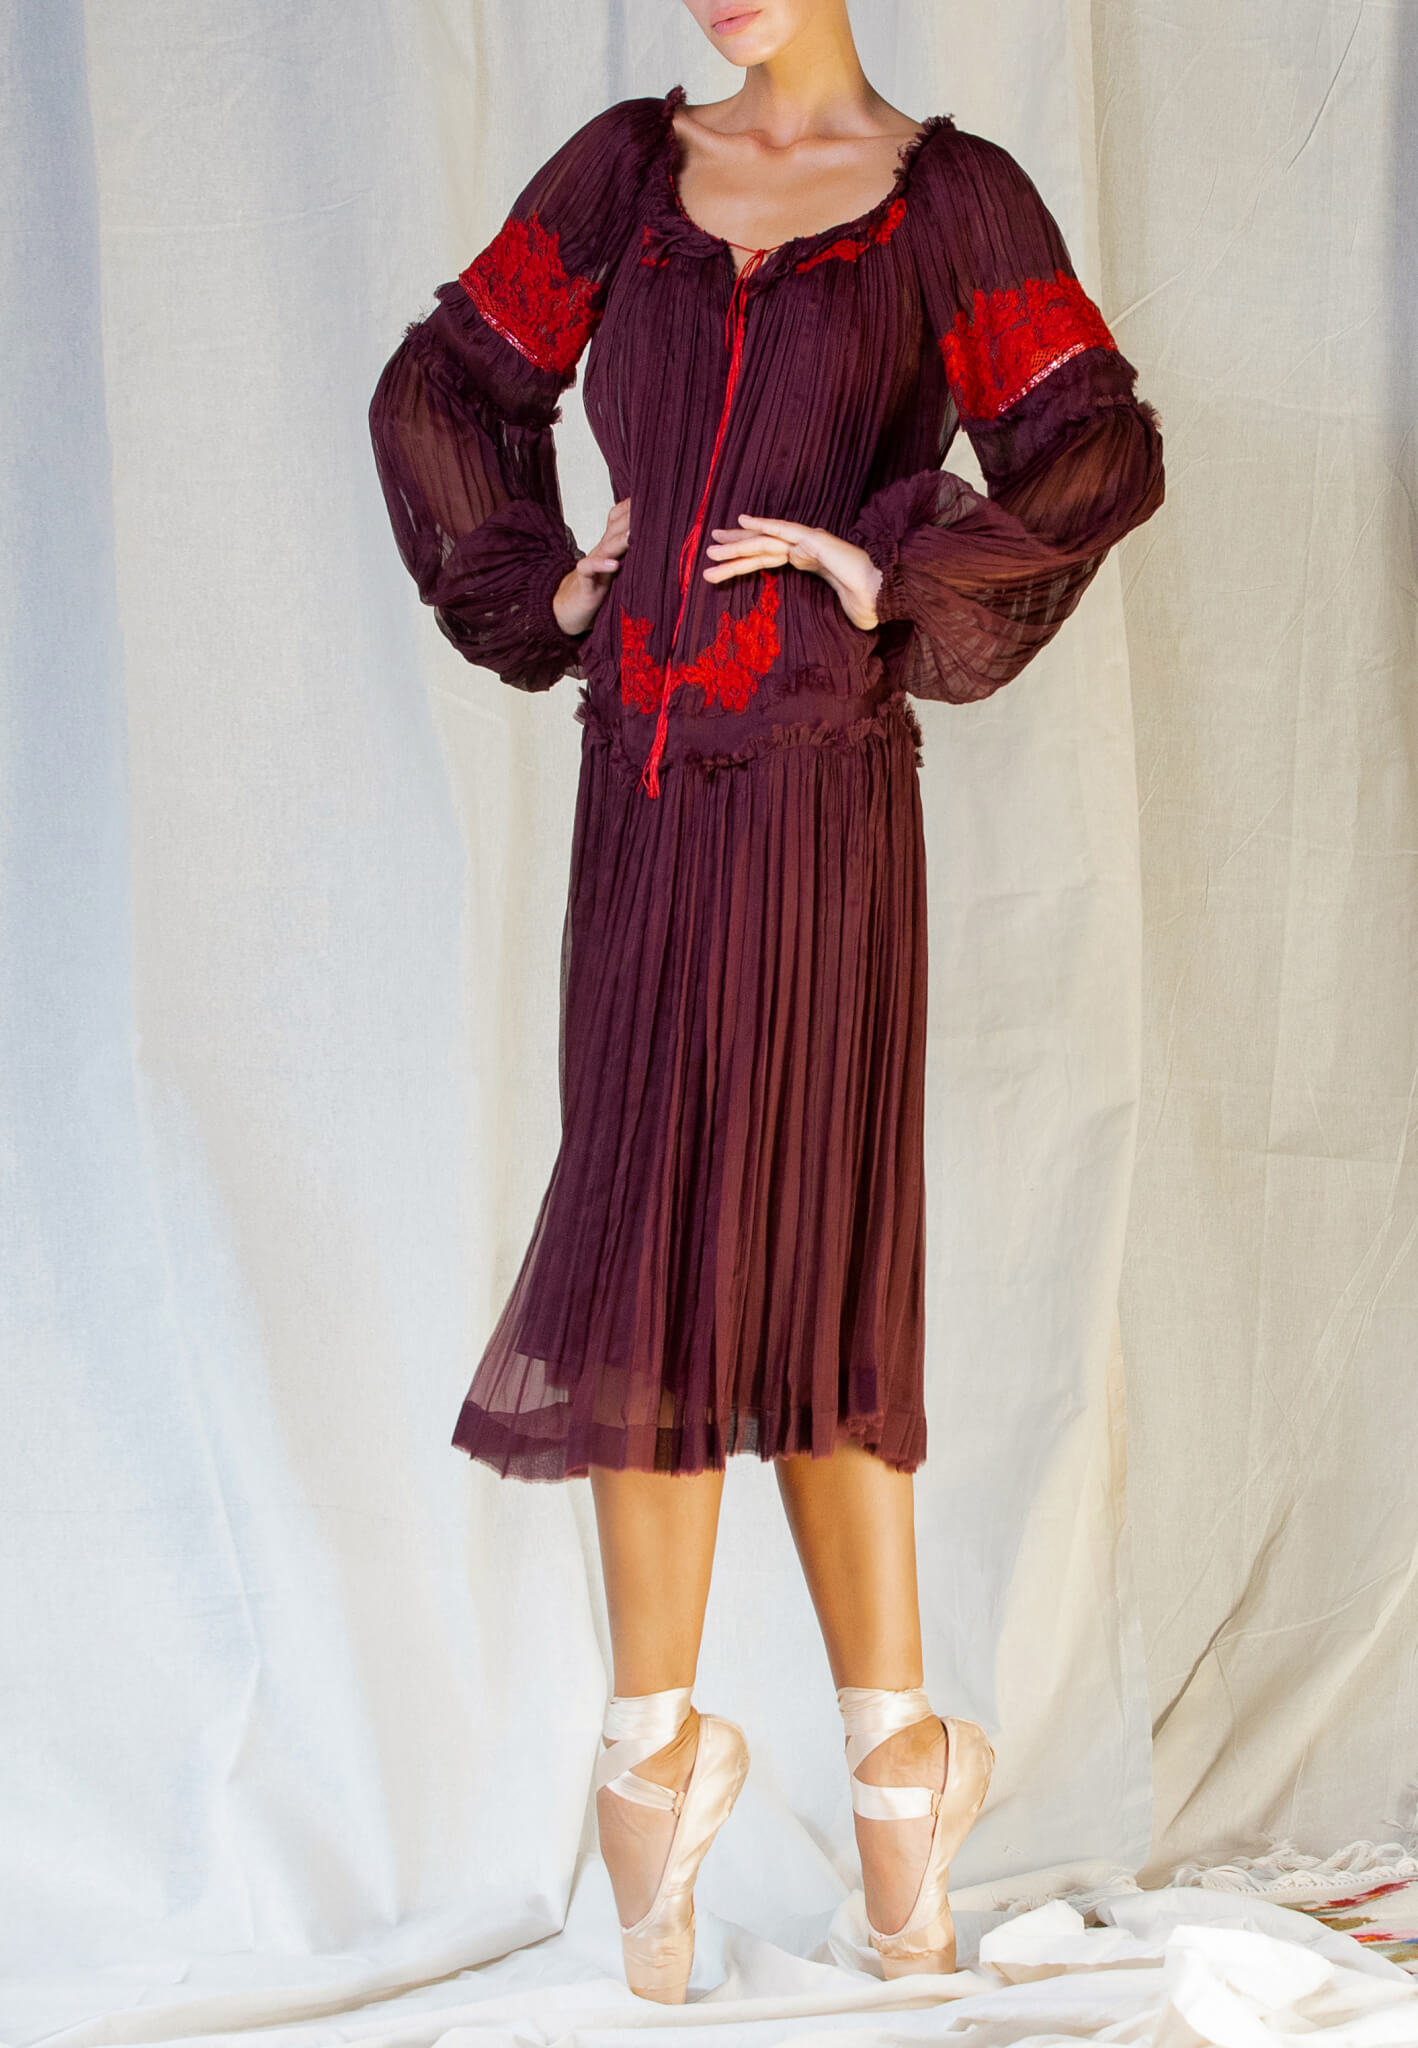 Bordo Silk dress